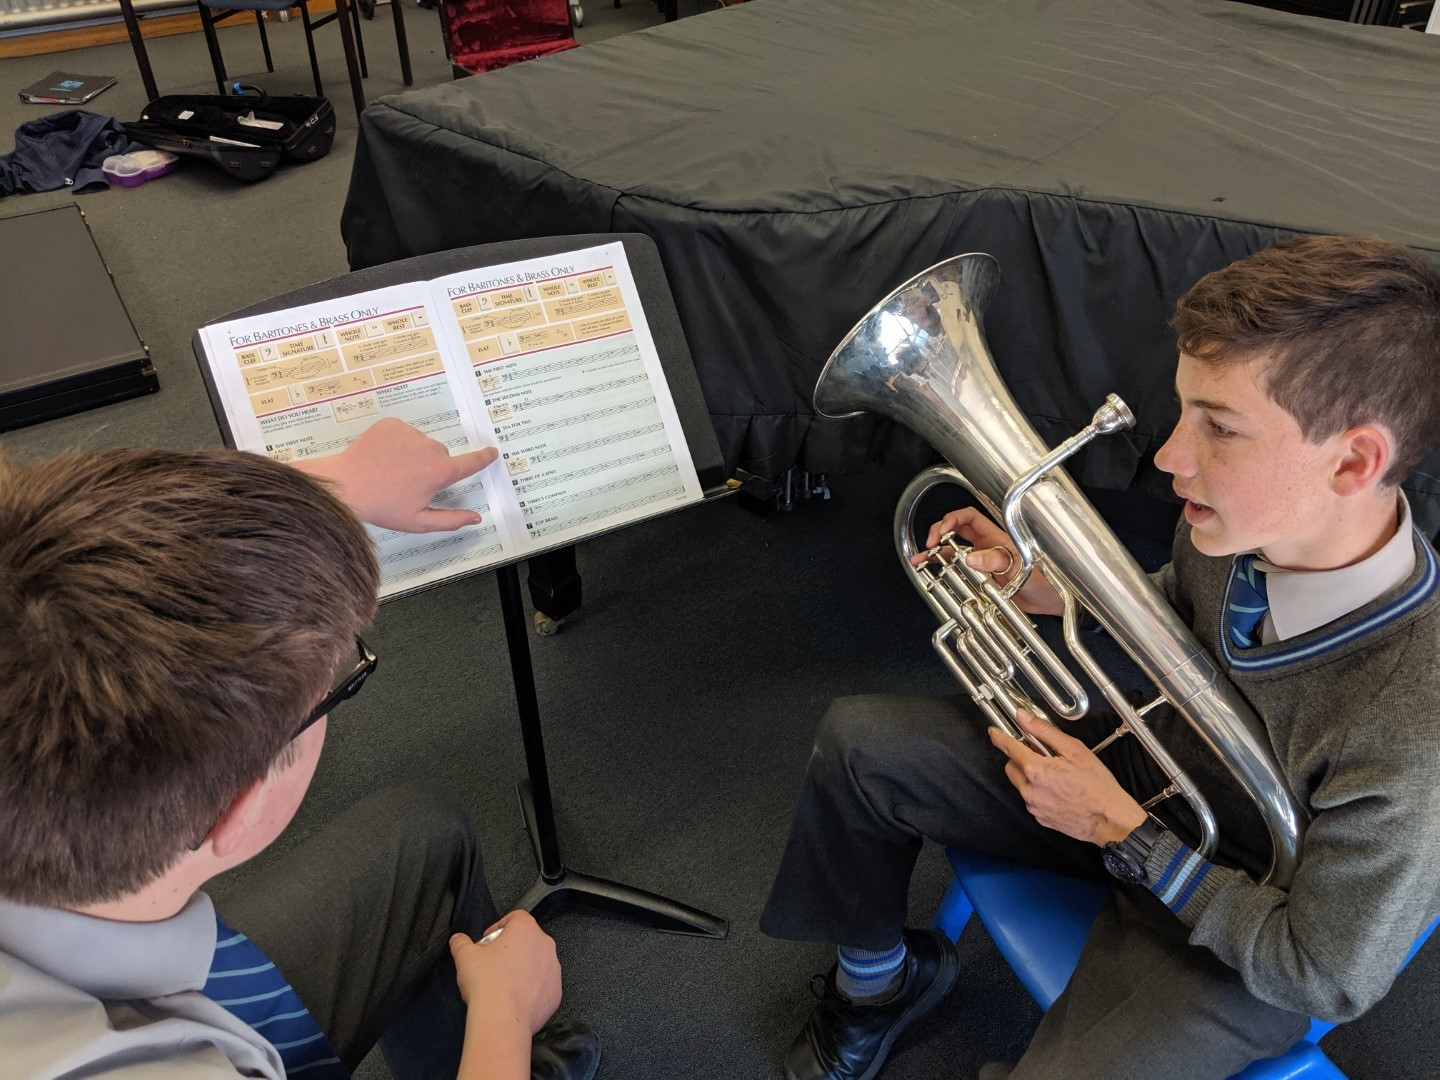 Year-9-Band-taught-their-own-instruments-to-other-band-members_newsletter.jpg?mtime=20200219130413#asset:2524